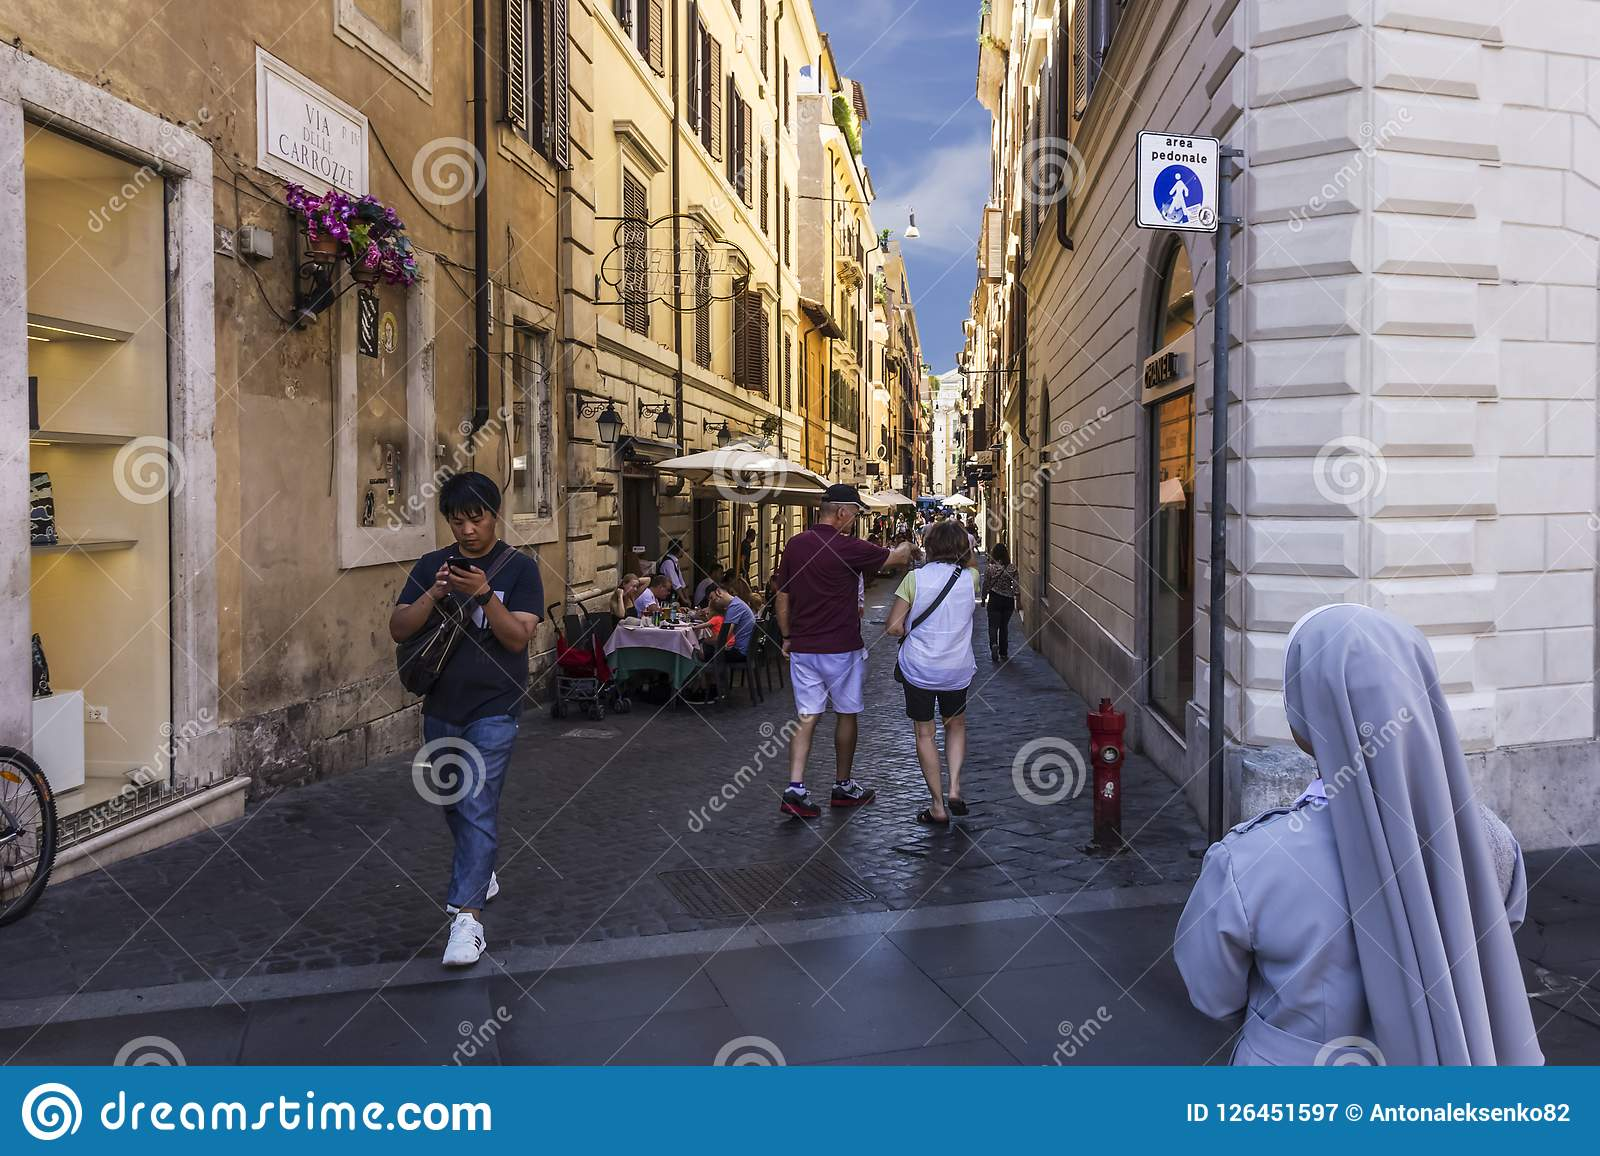 Rome/Italy - August 26, 2018: Italian Street Via Delle Carrozze with tourists, street cafes and a votaress